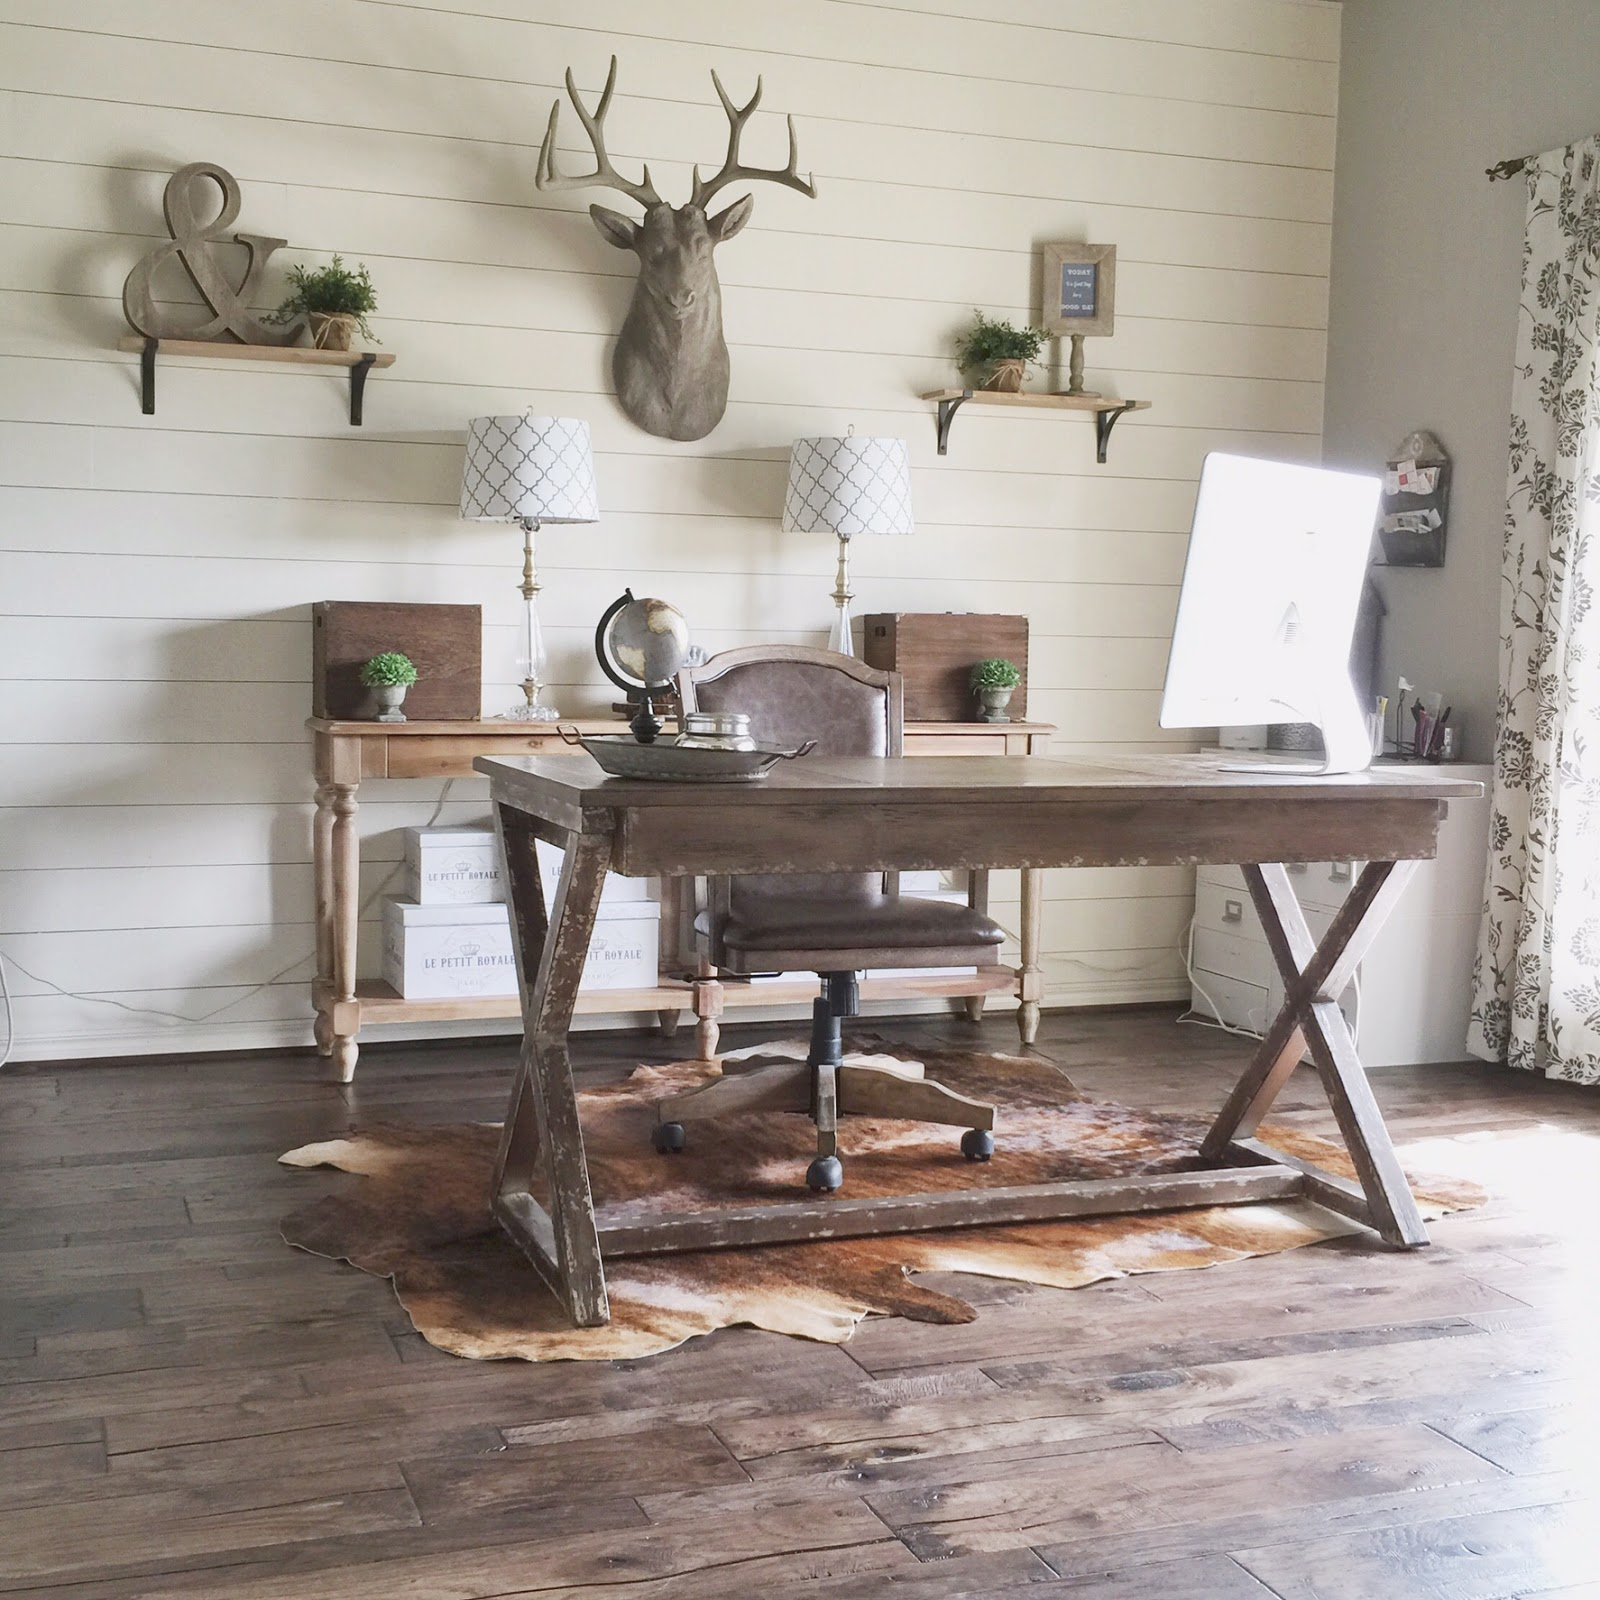 Rustic Modern Office Remodelaholic Rustic Modern Home Office Design